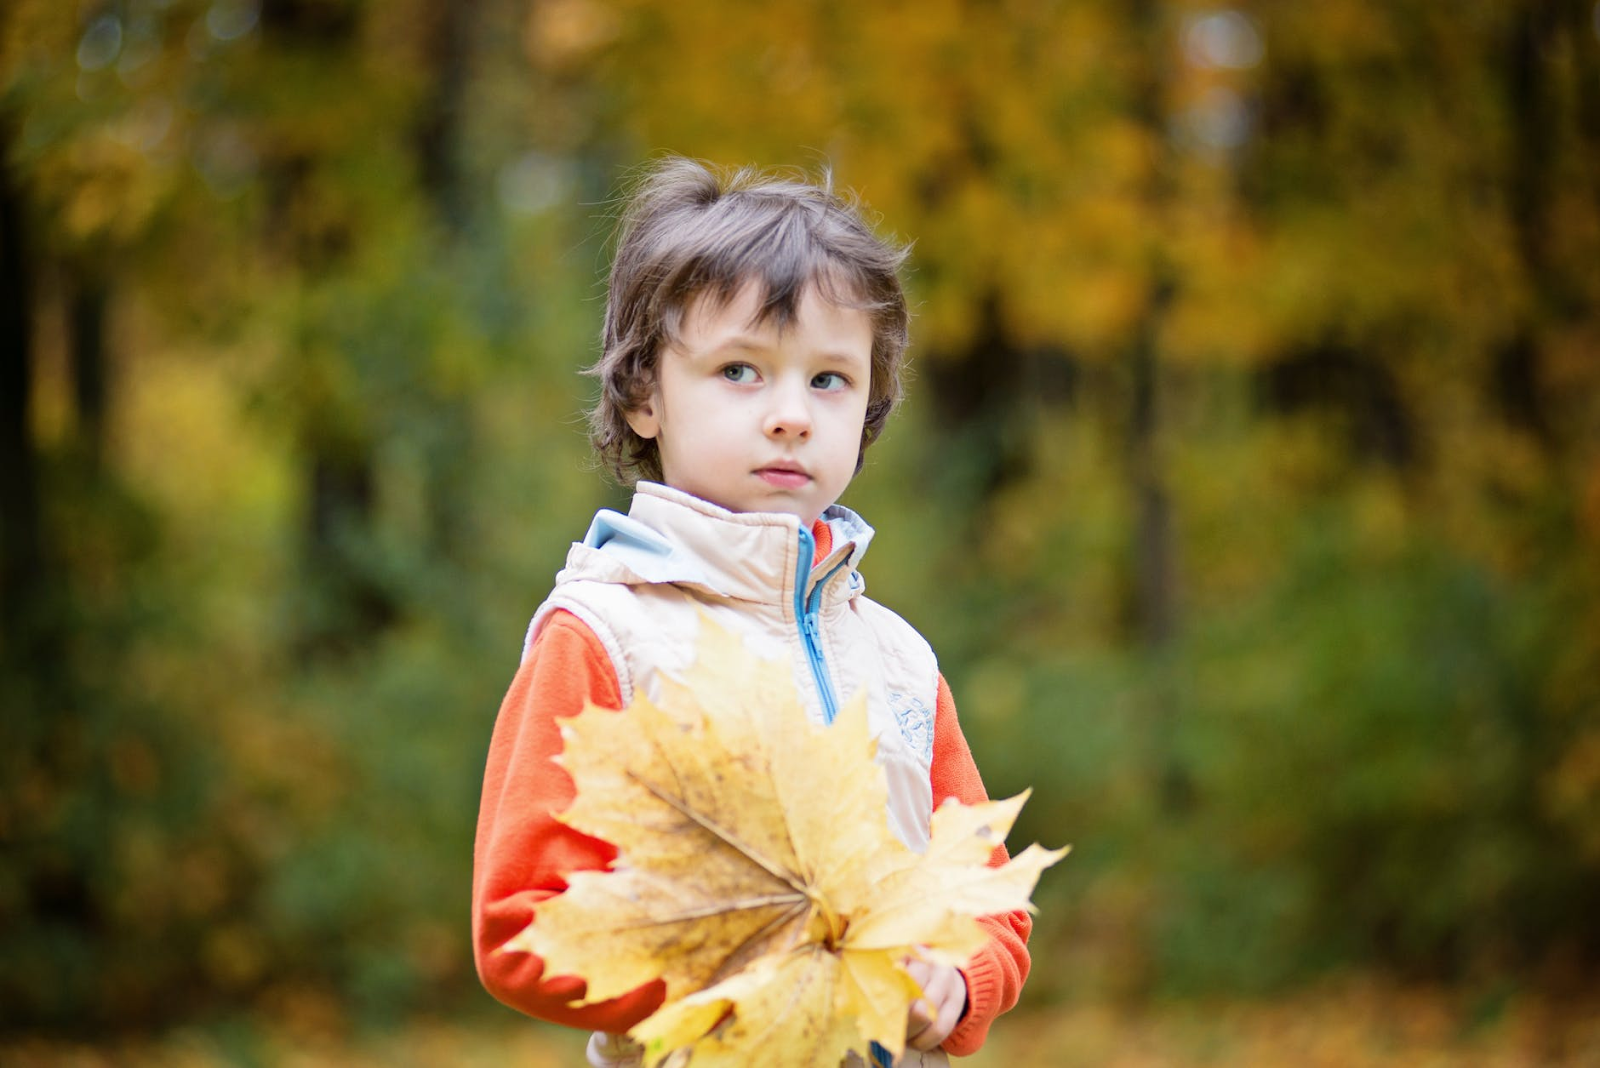 Boy play outside with leaf